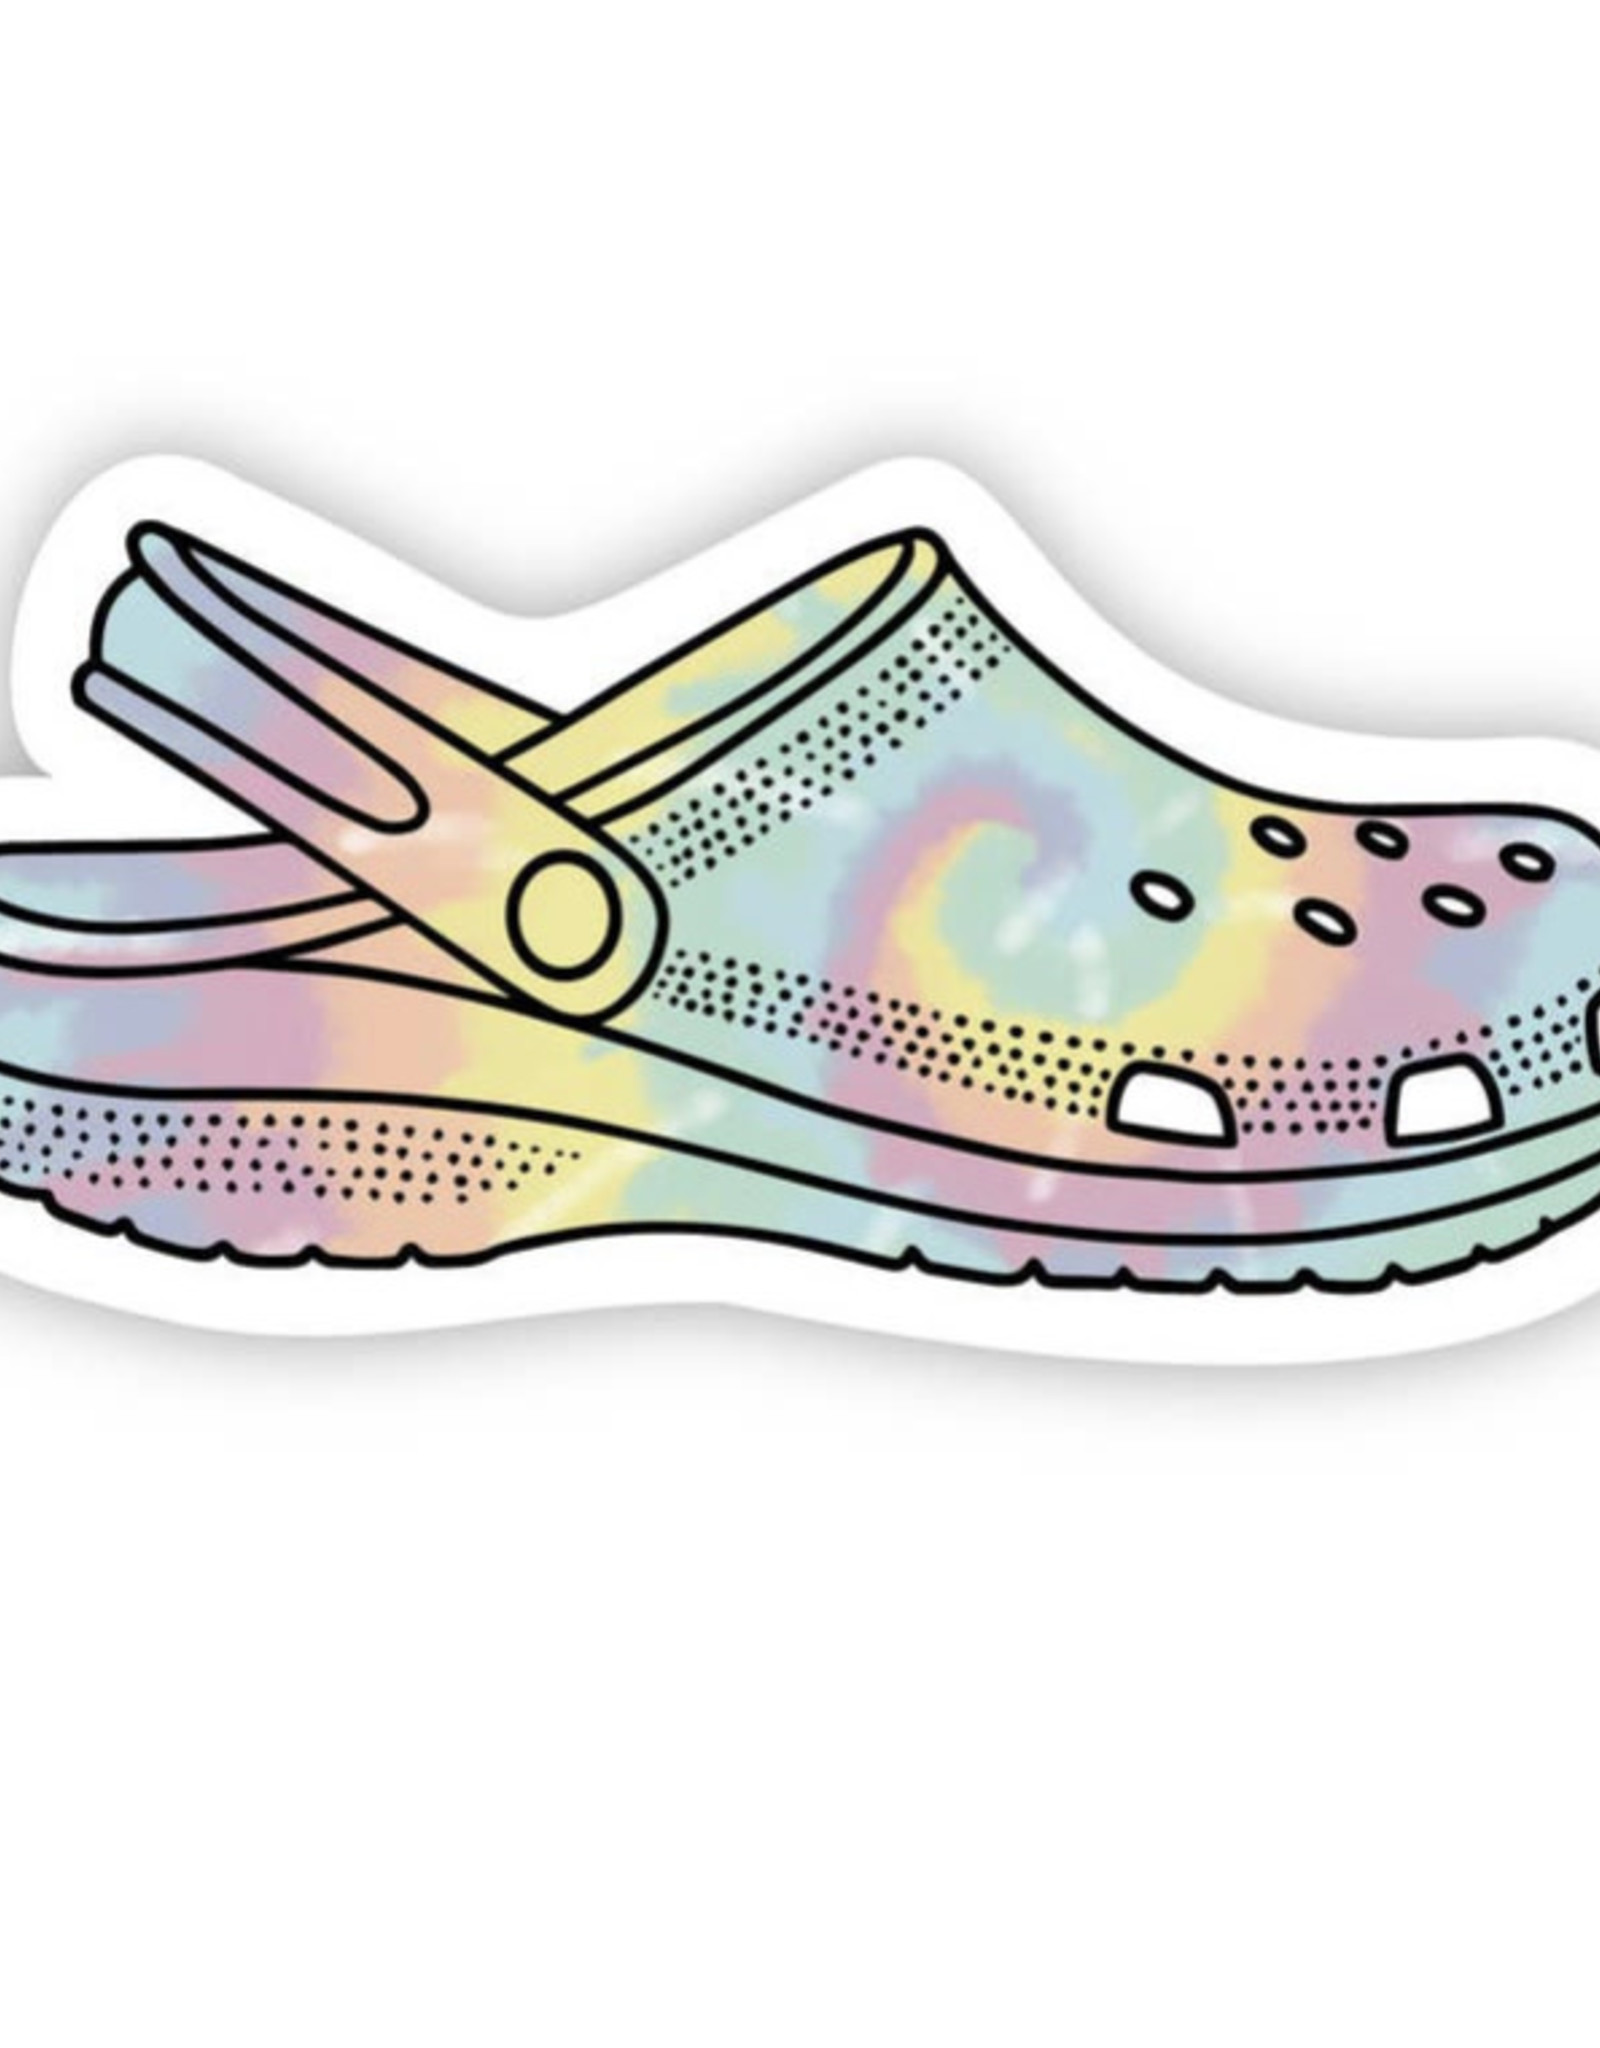 Big Moods Tye die croc sticker